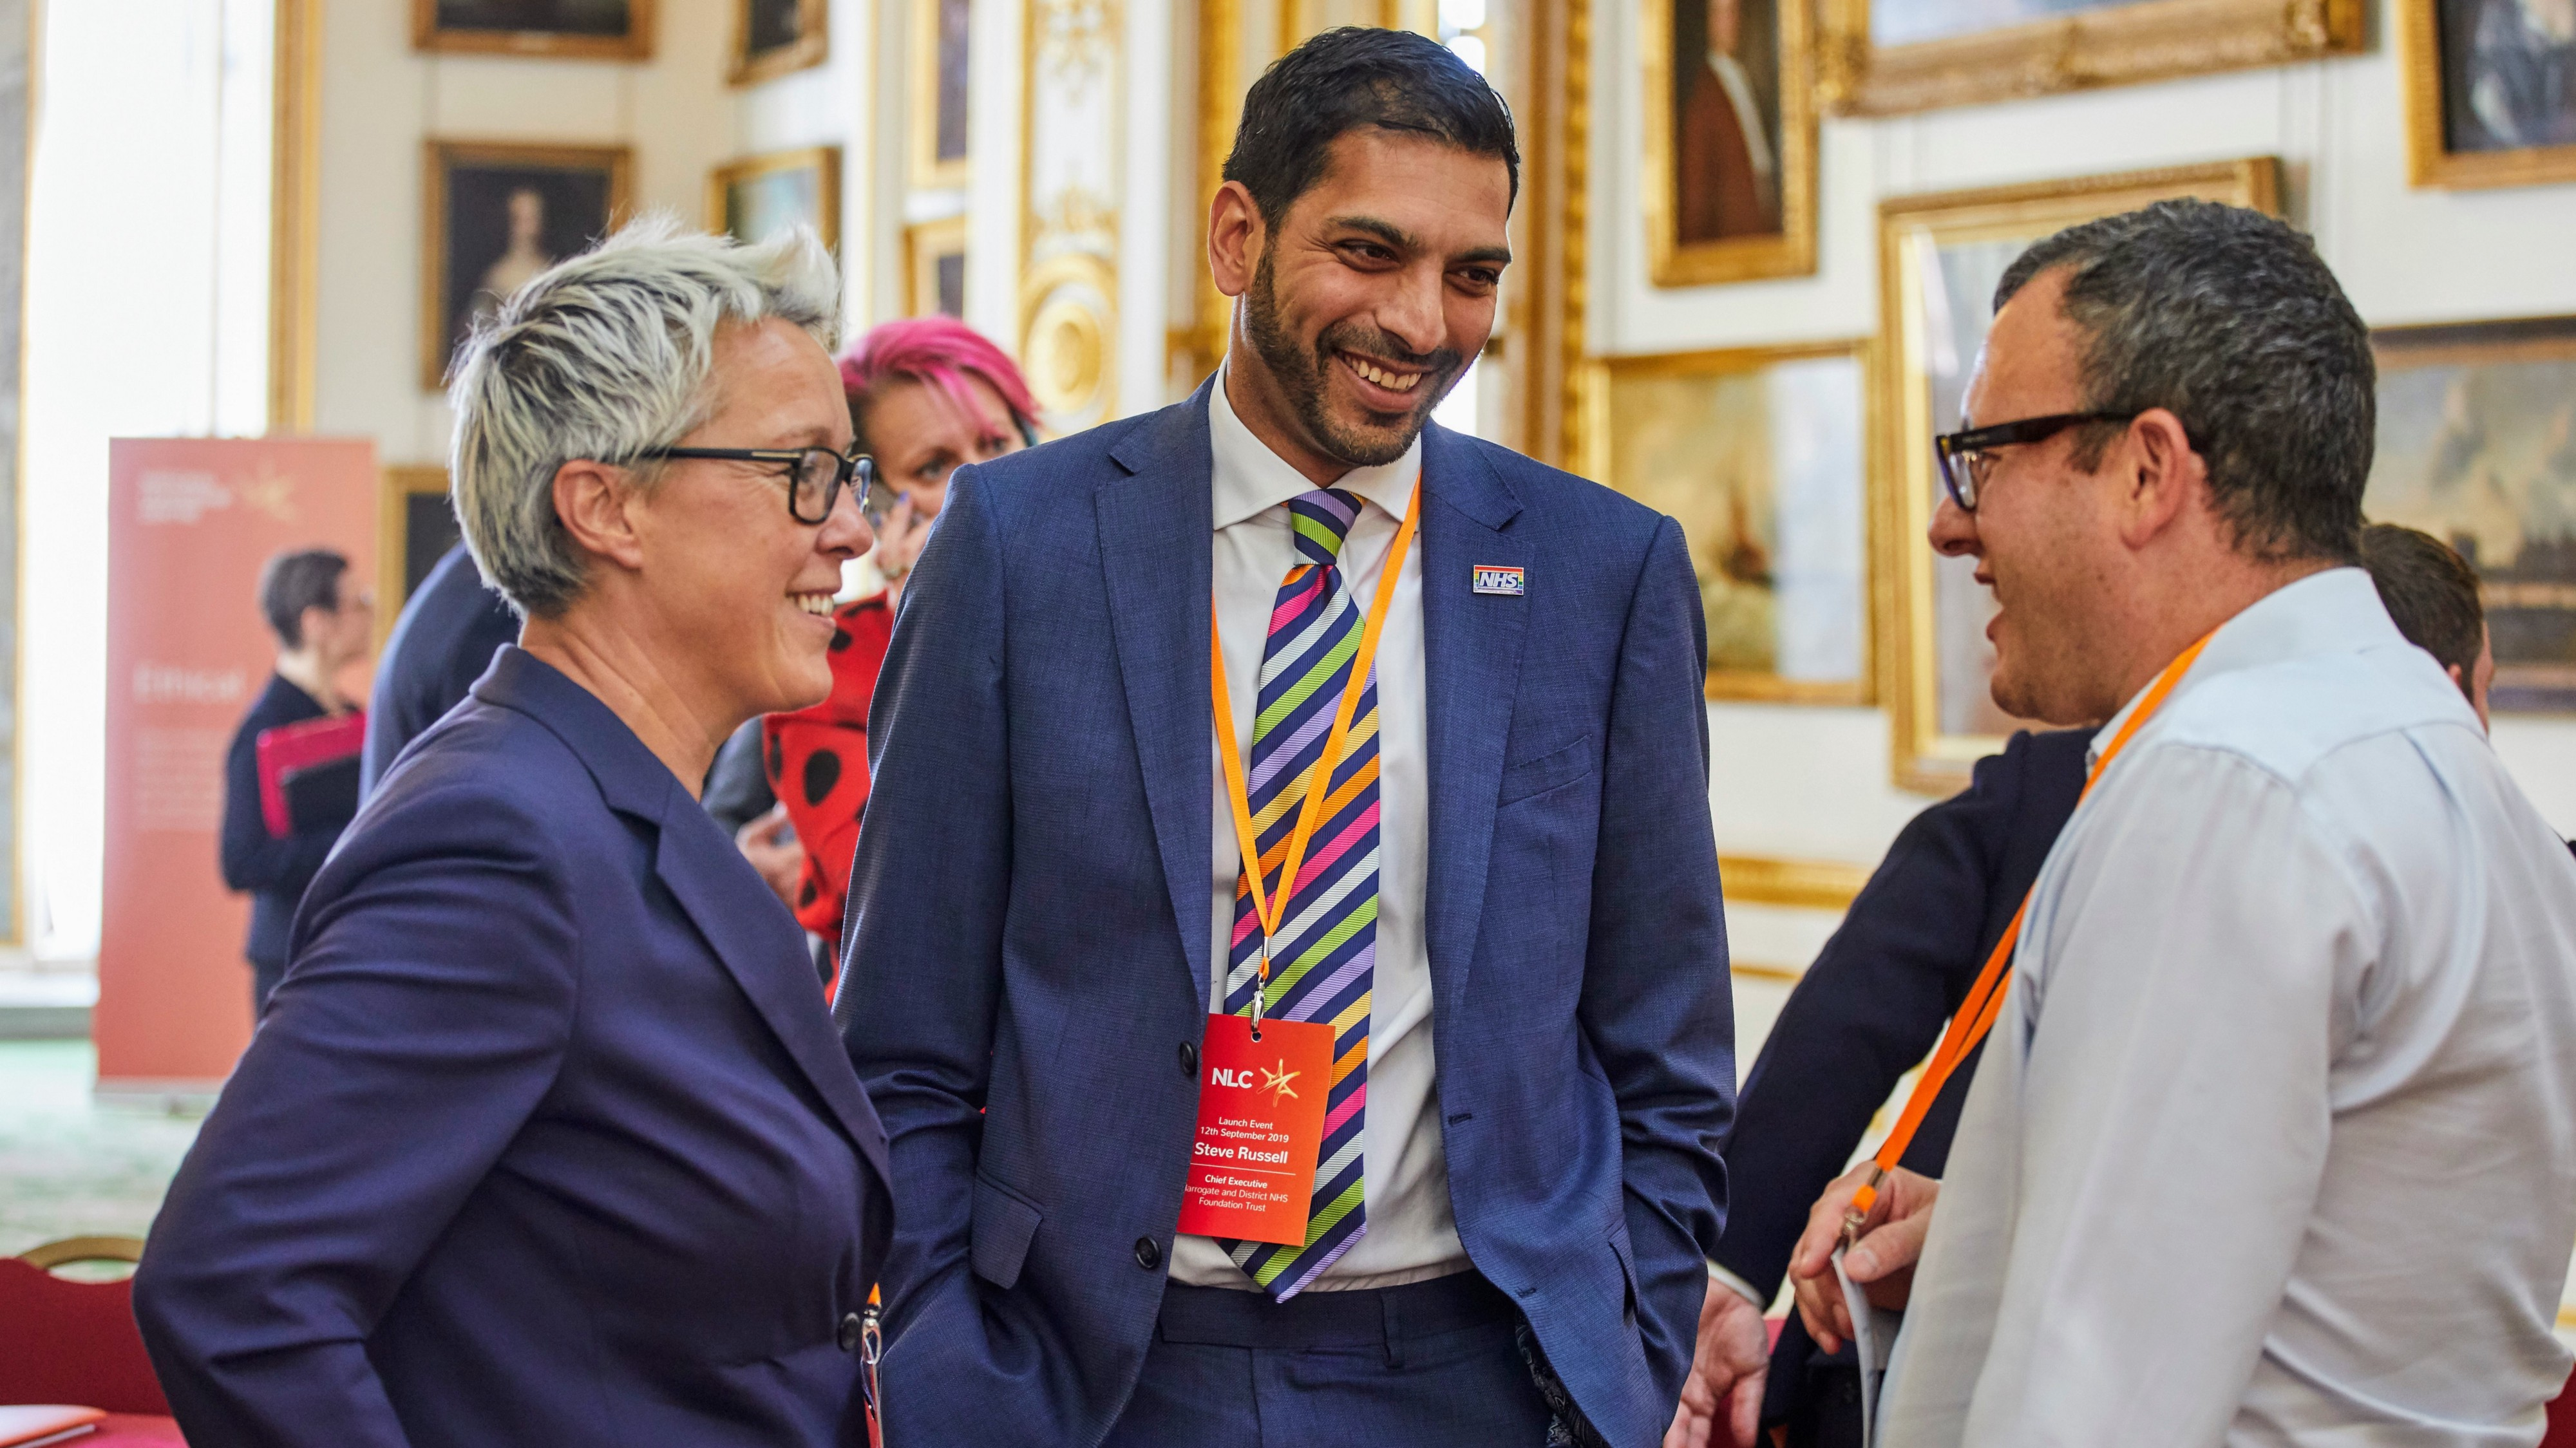 Three people laughing while talking at the National Leadership Centre's launch event